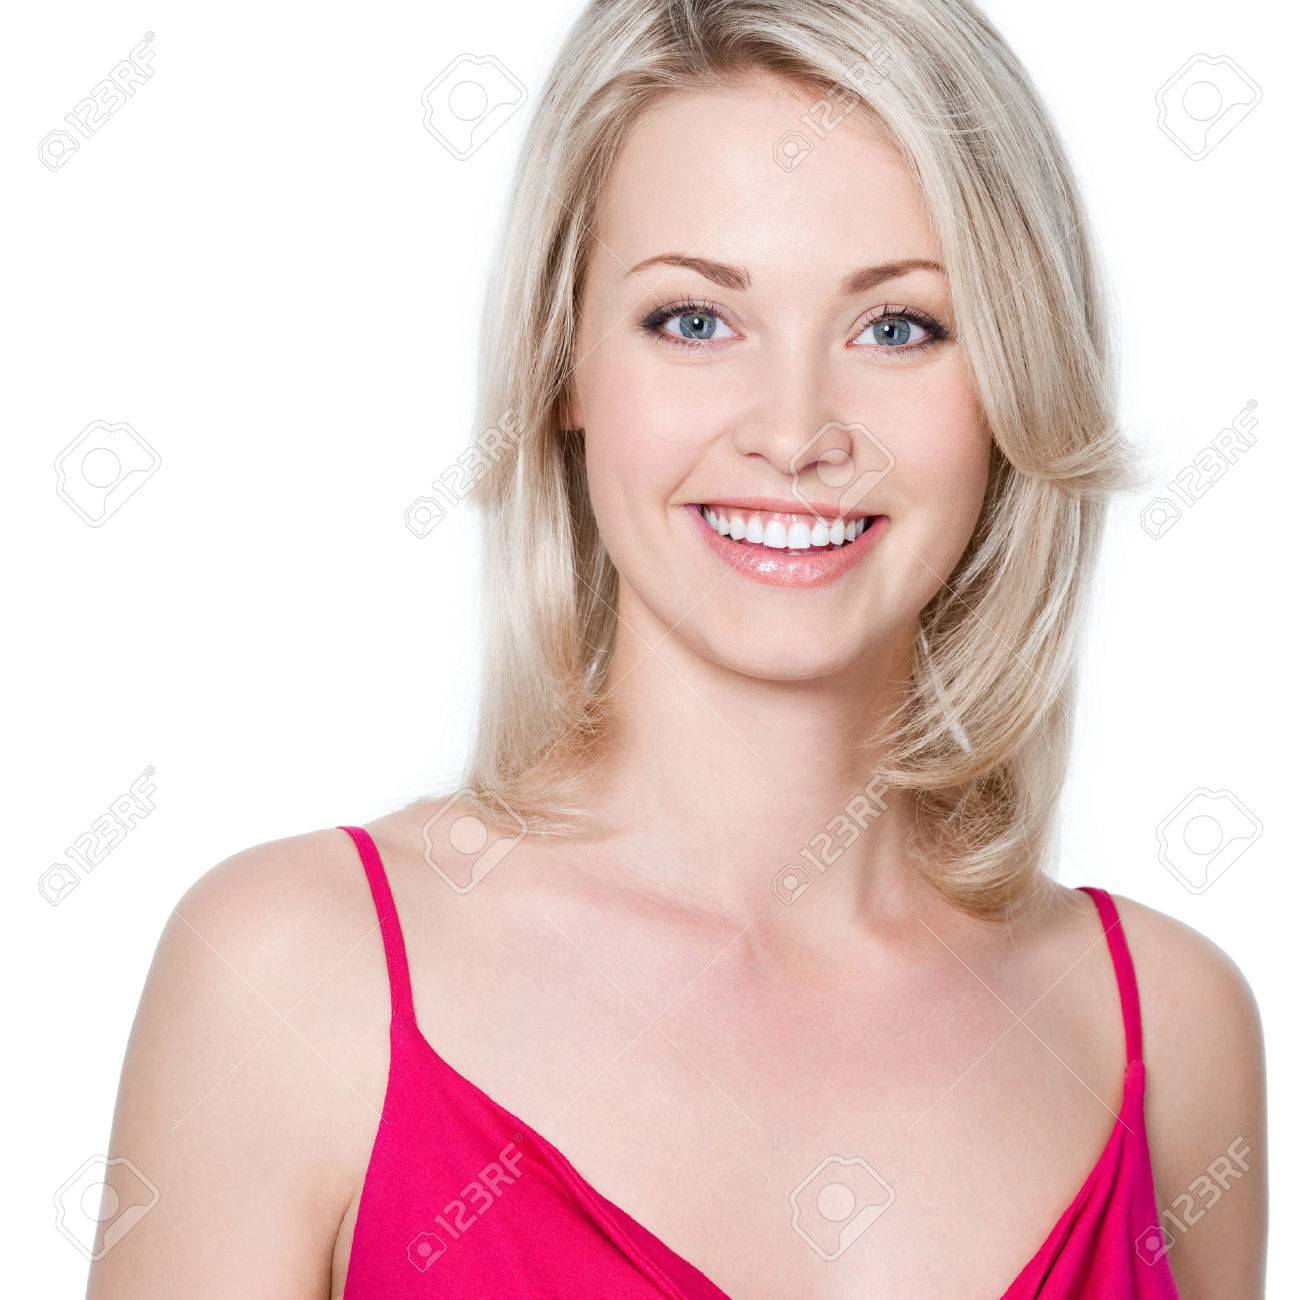 Close-up portrait of young beautiful woman with attractive toothy smile Banque d'images - 53558558